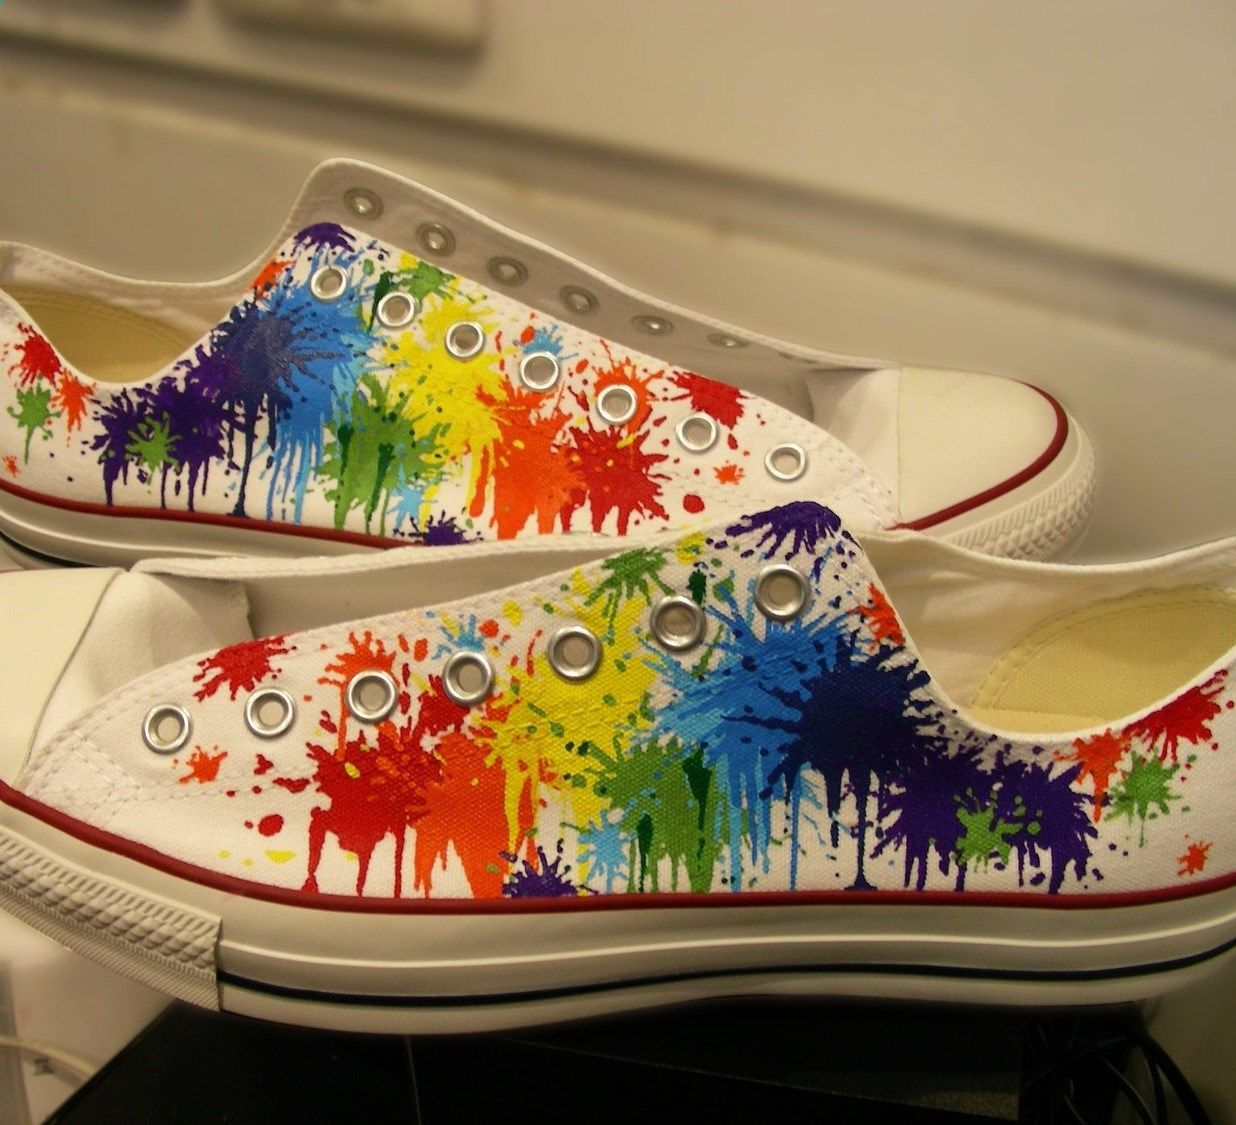 rainbow paint splatter [Converse shoes]